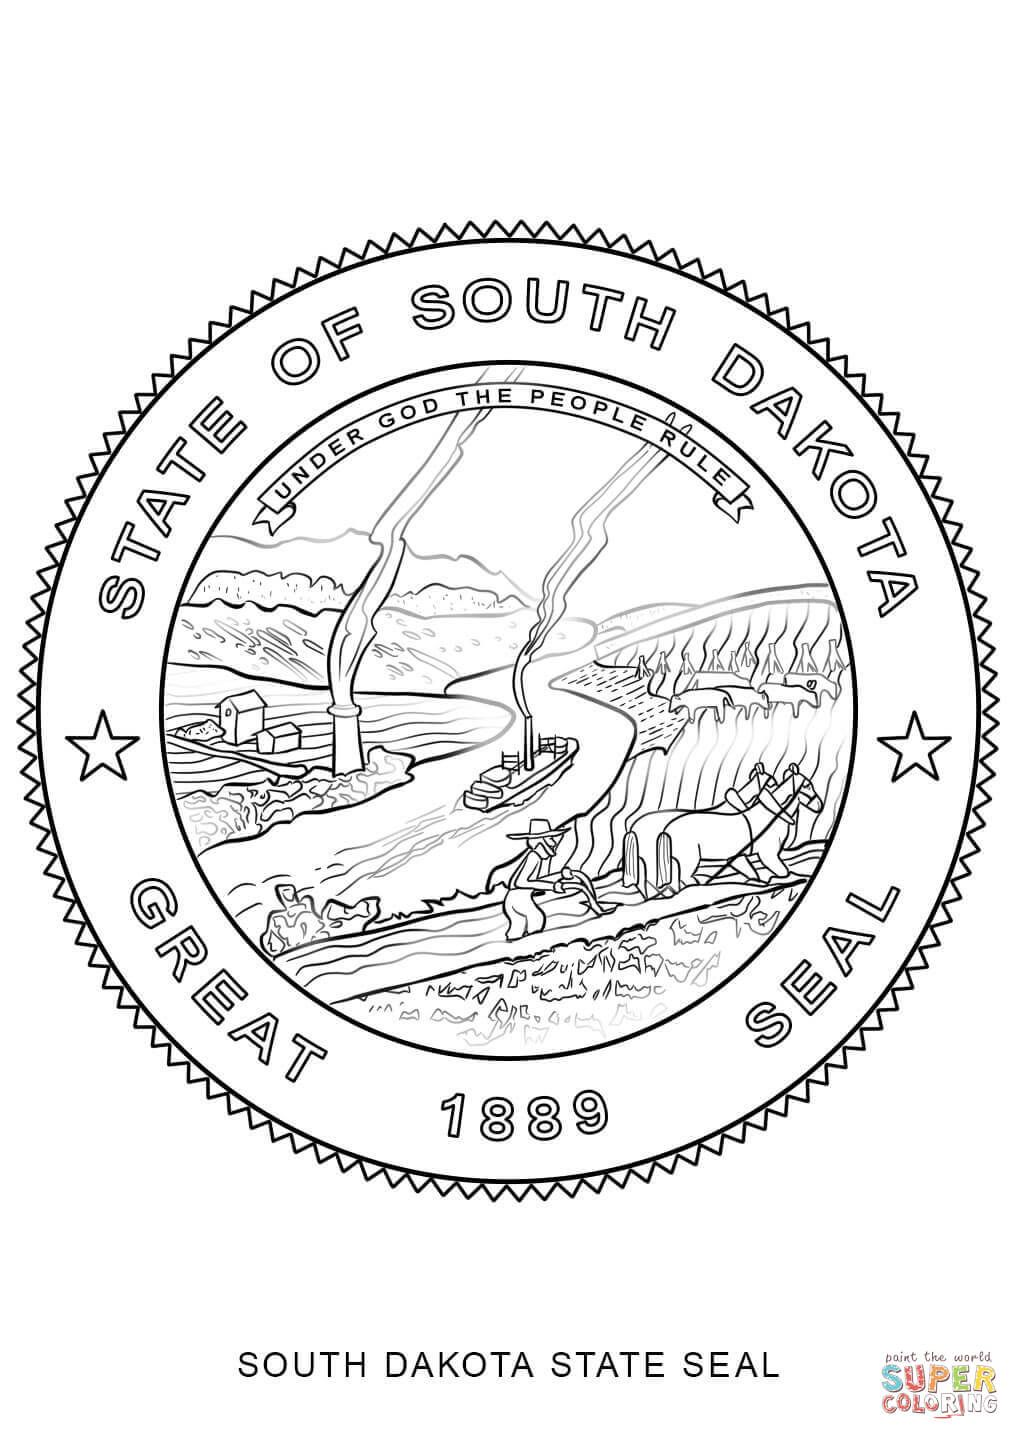 Click the South Dakota State Seal coloring pages to view